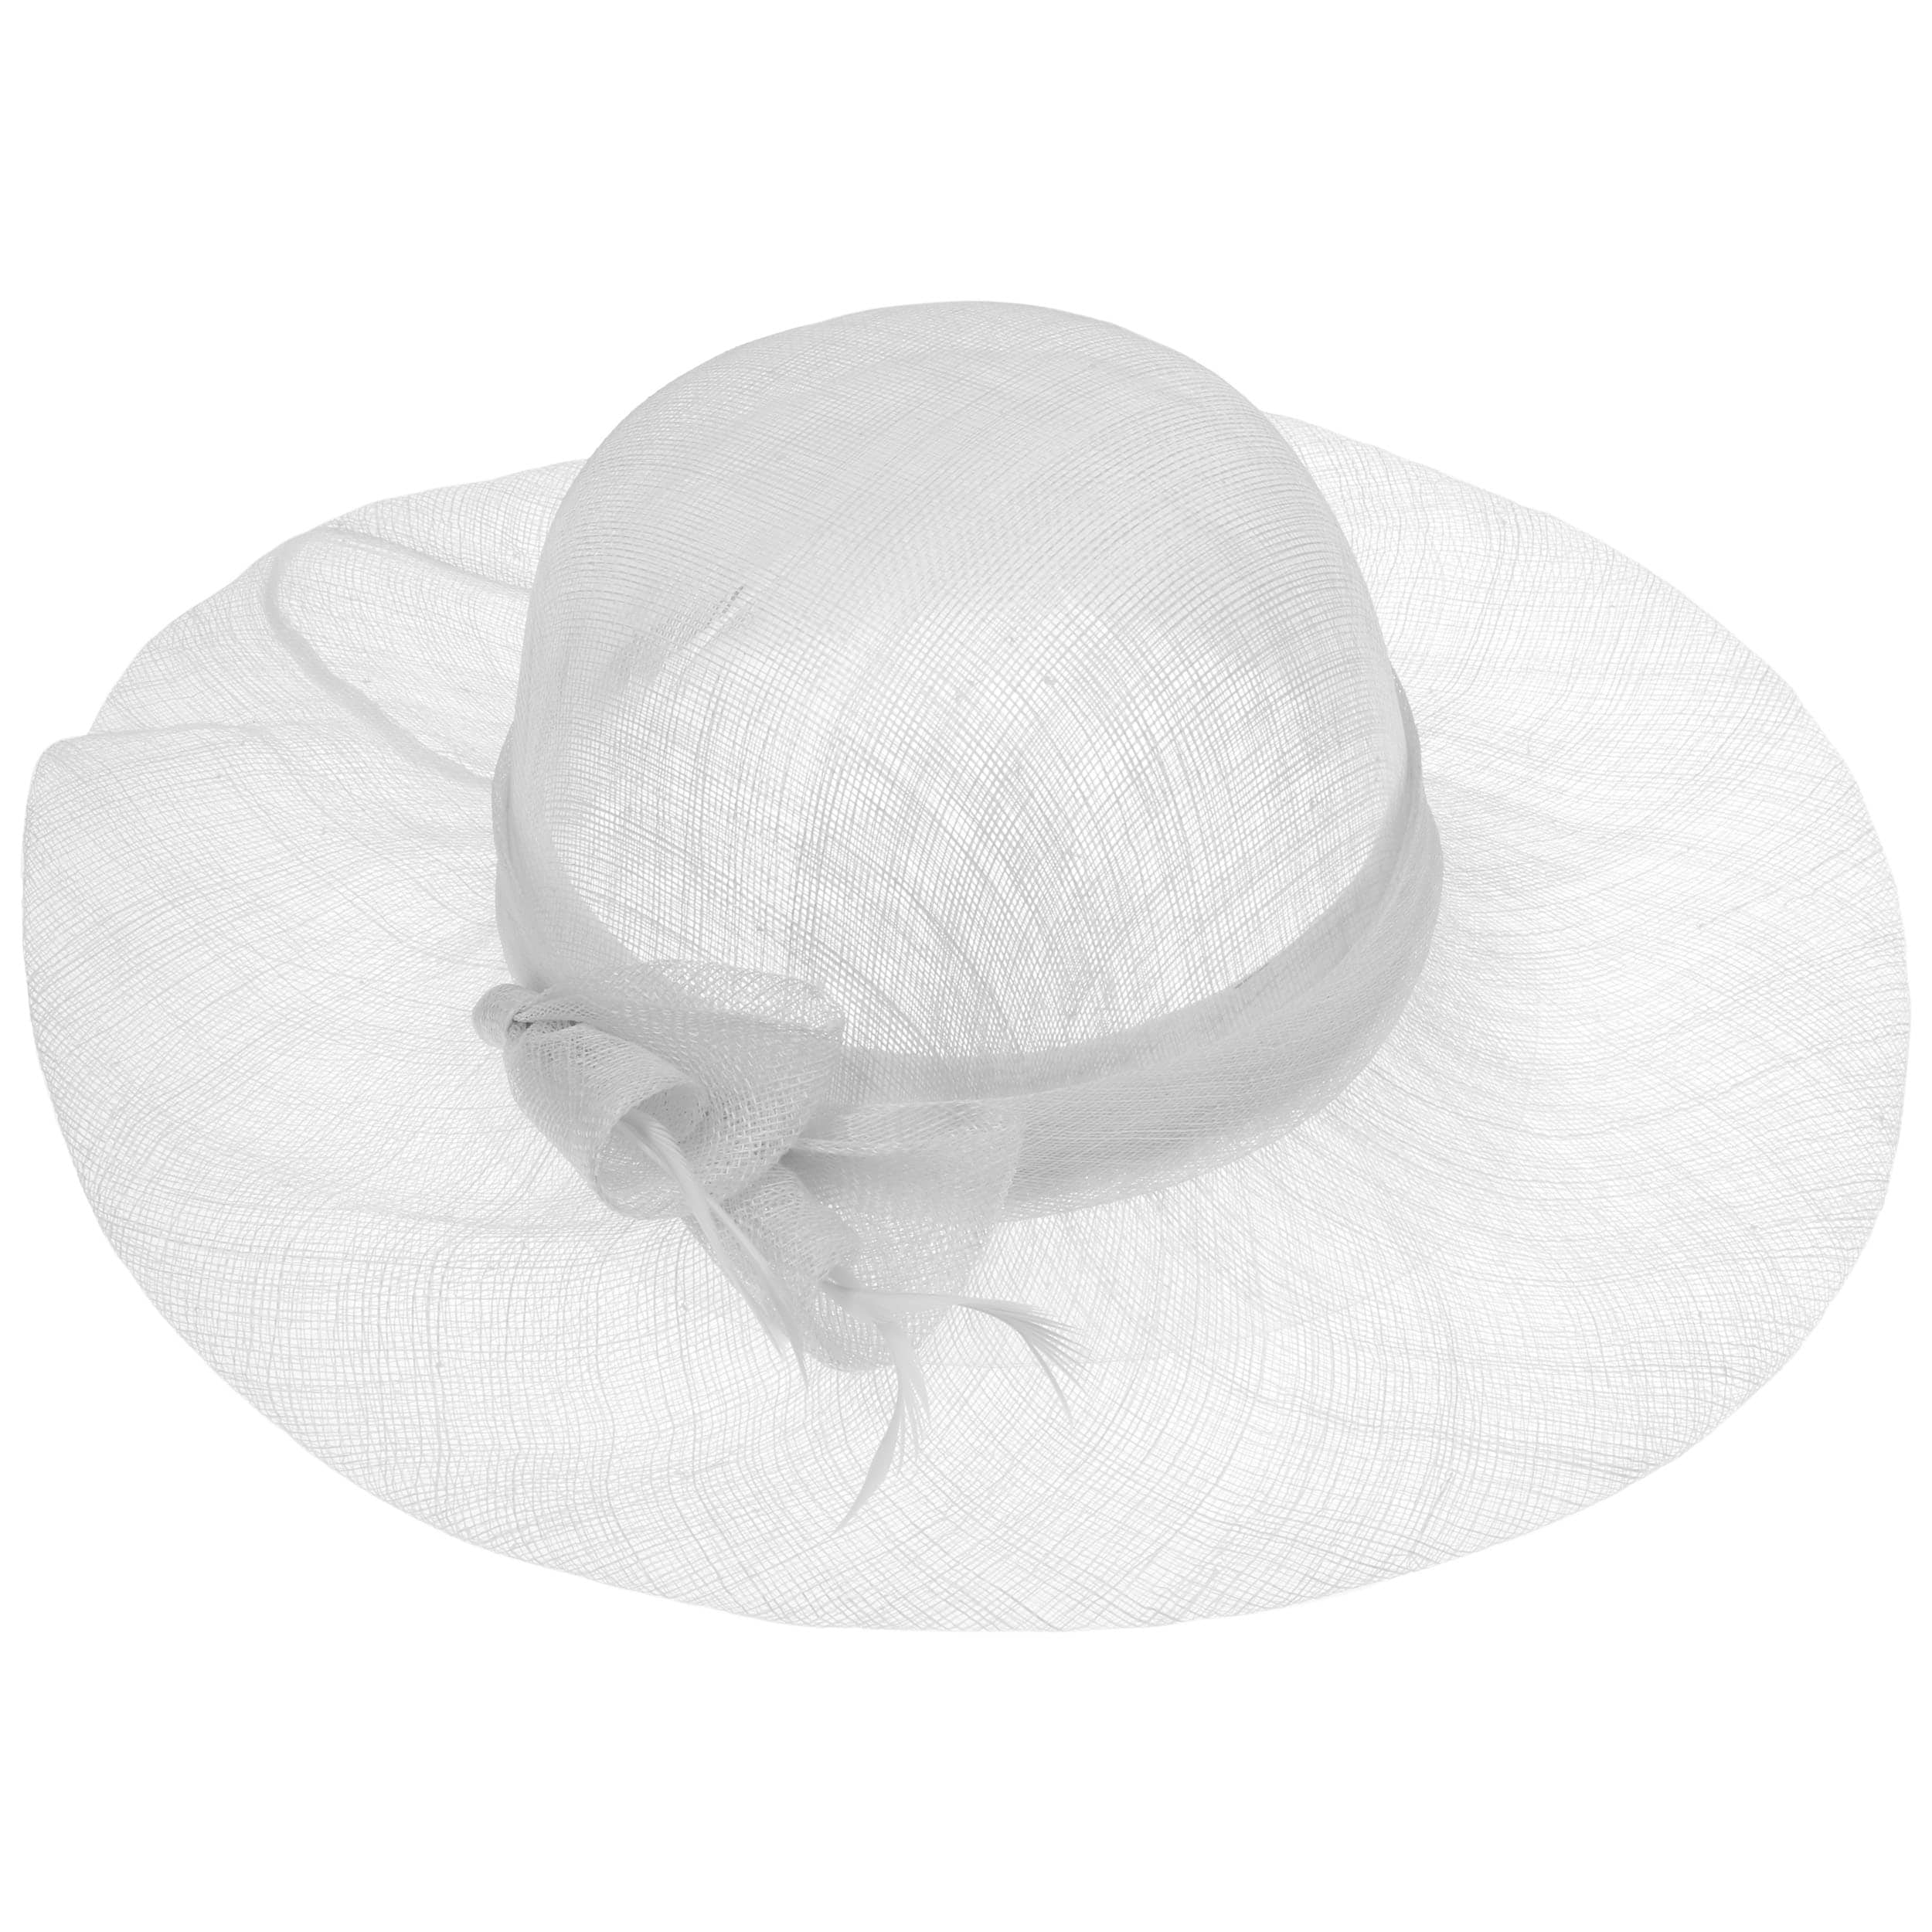 Sinamay Floppy Occasion Hat By Seeberger, GBP 71,95